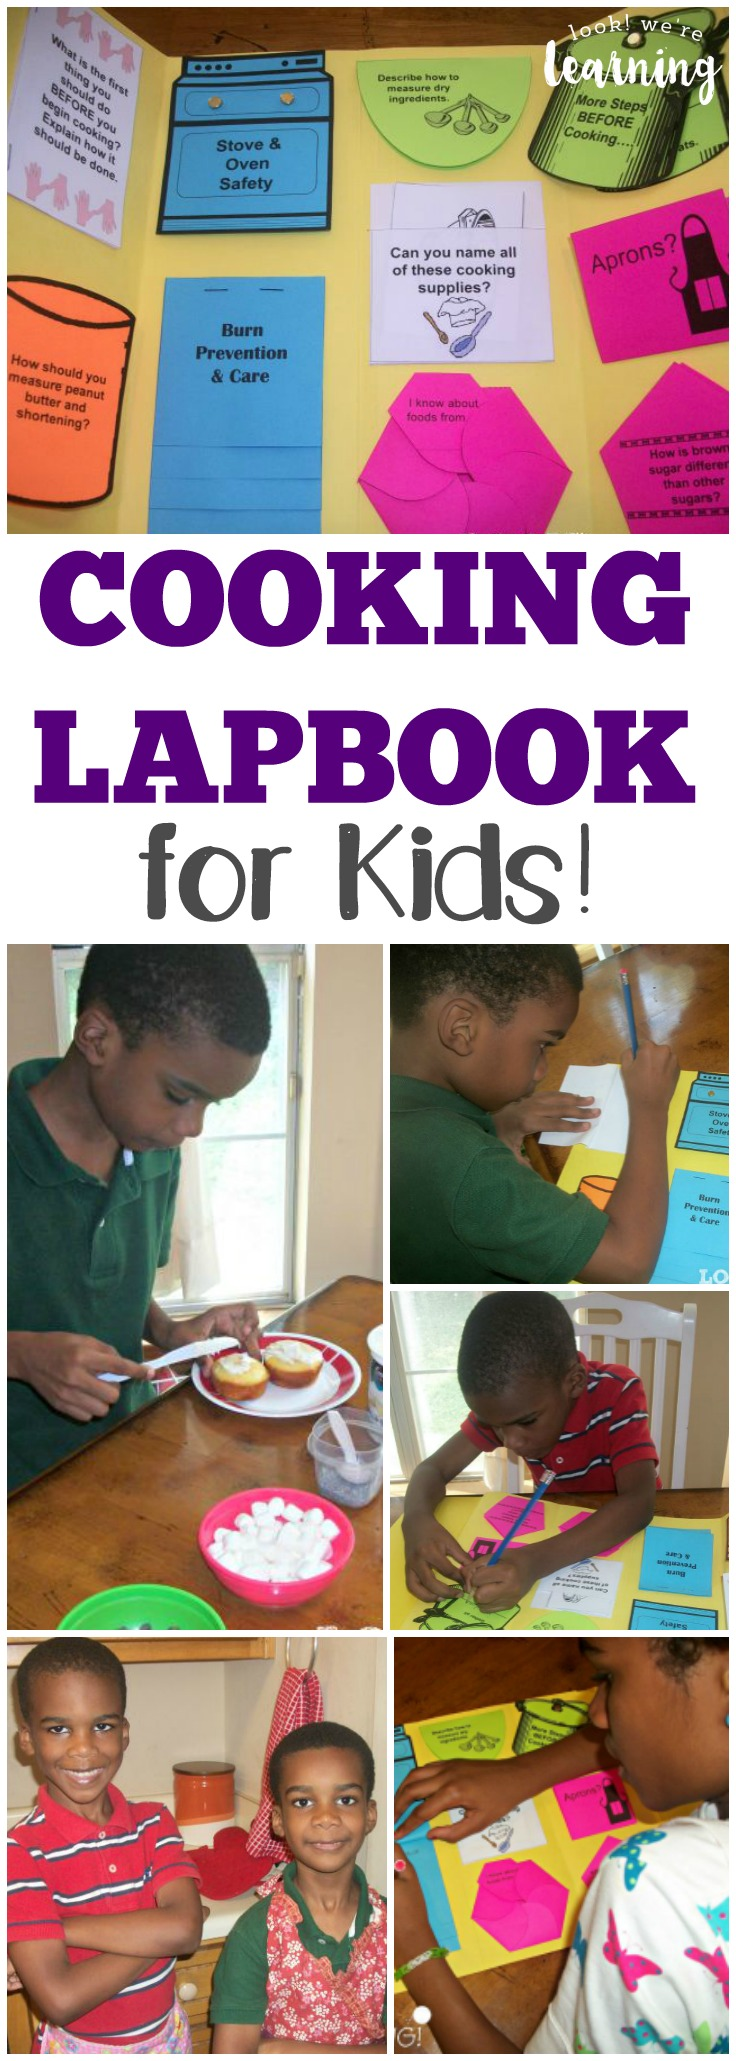 This cooking lapbook is a fun way to teach kids how to cook for themselves!